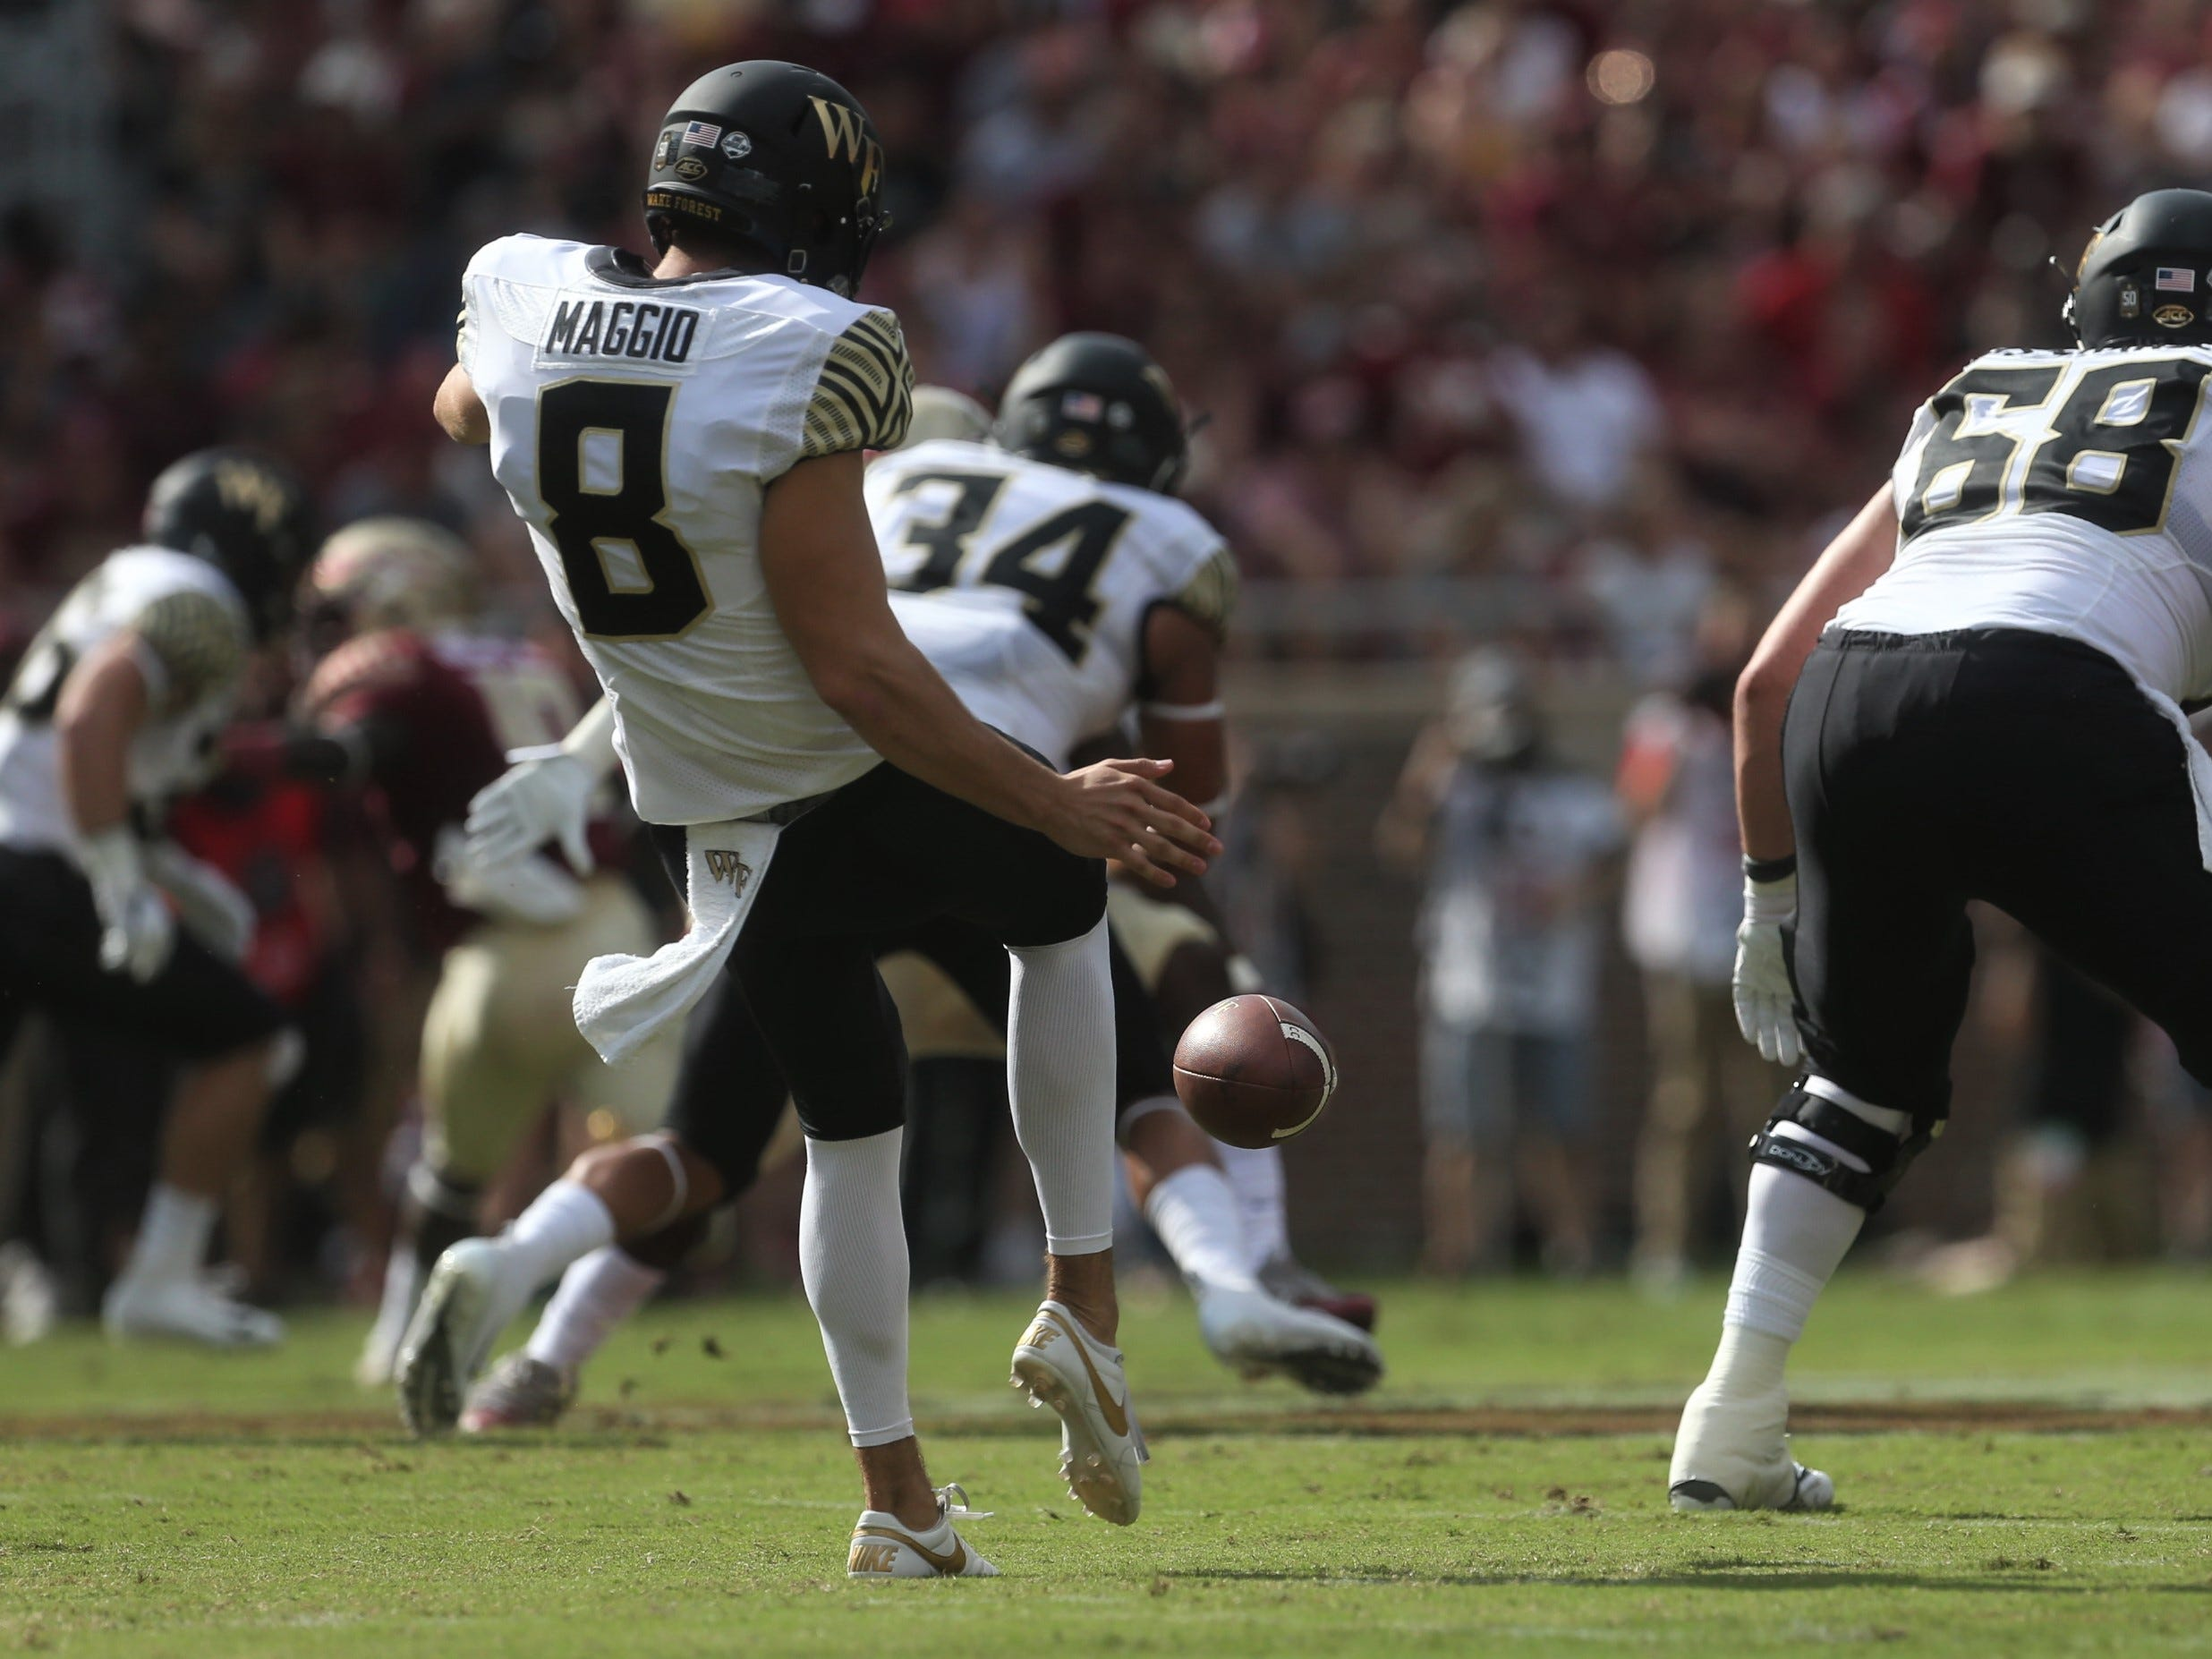 Wake Forest punter Dom Maggio tries to punt a ball deep against Florida State during a game at Doak Campbell Stadium on Saturday, Oct. 20, 2018.